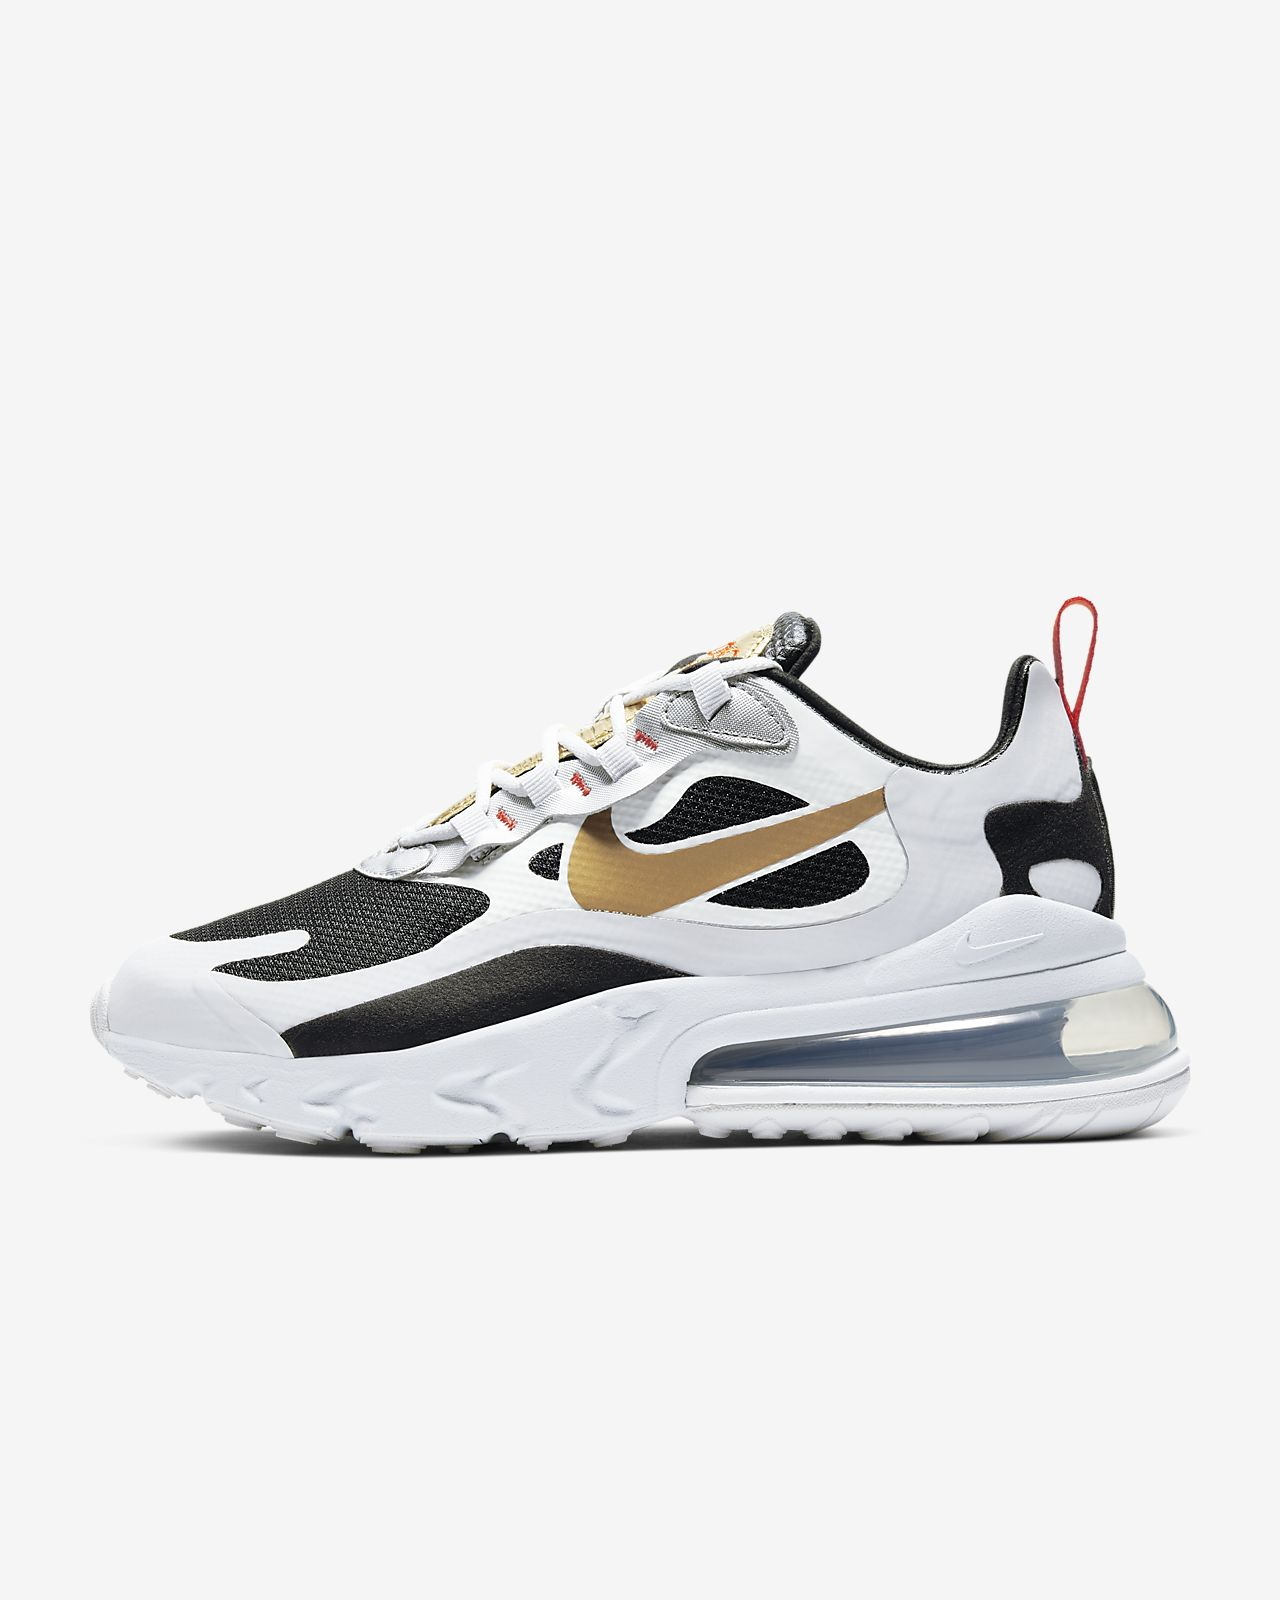 Now Available: Nike Air Max 270